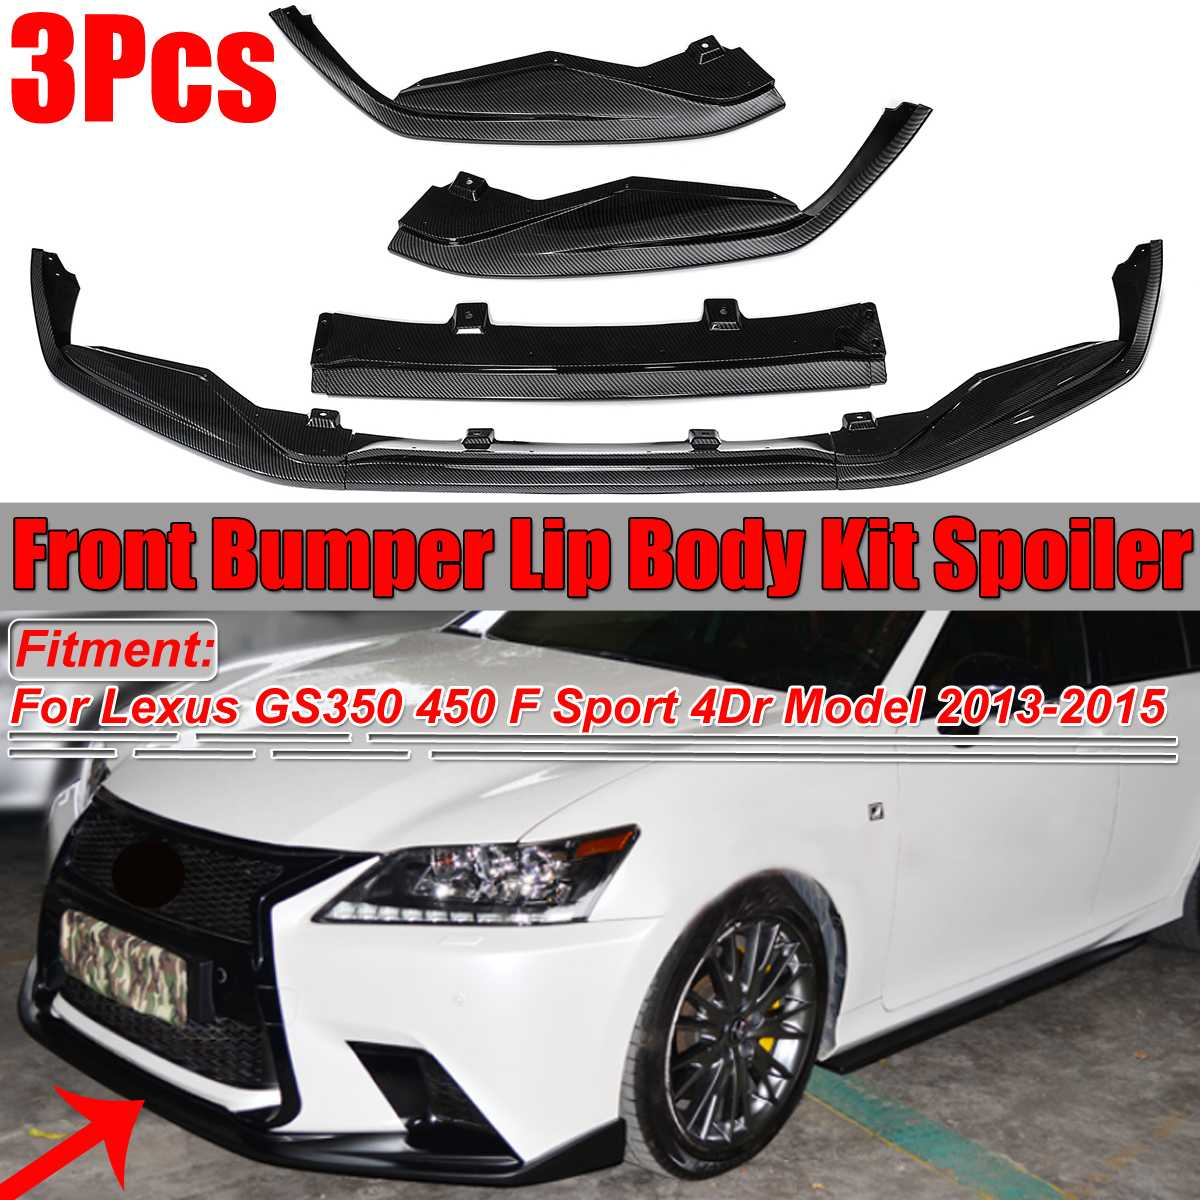 Carbon Fiber Look Car Front Bumper Lip Splitter Spoiler Cover Diffuser Trim For Lexus GS350 450 F Sport 4Dr Model 2013 2014 2015 title=